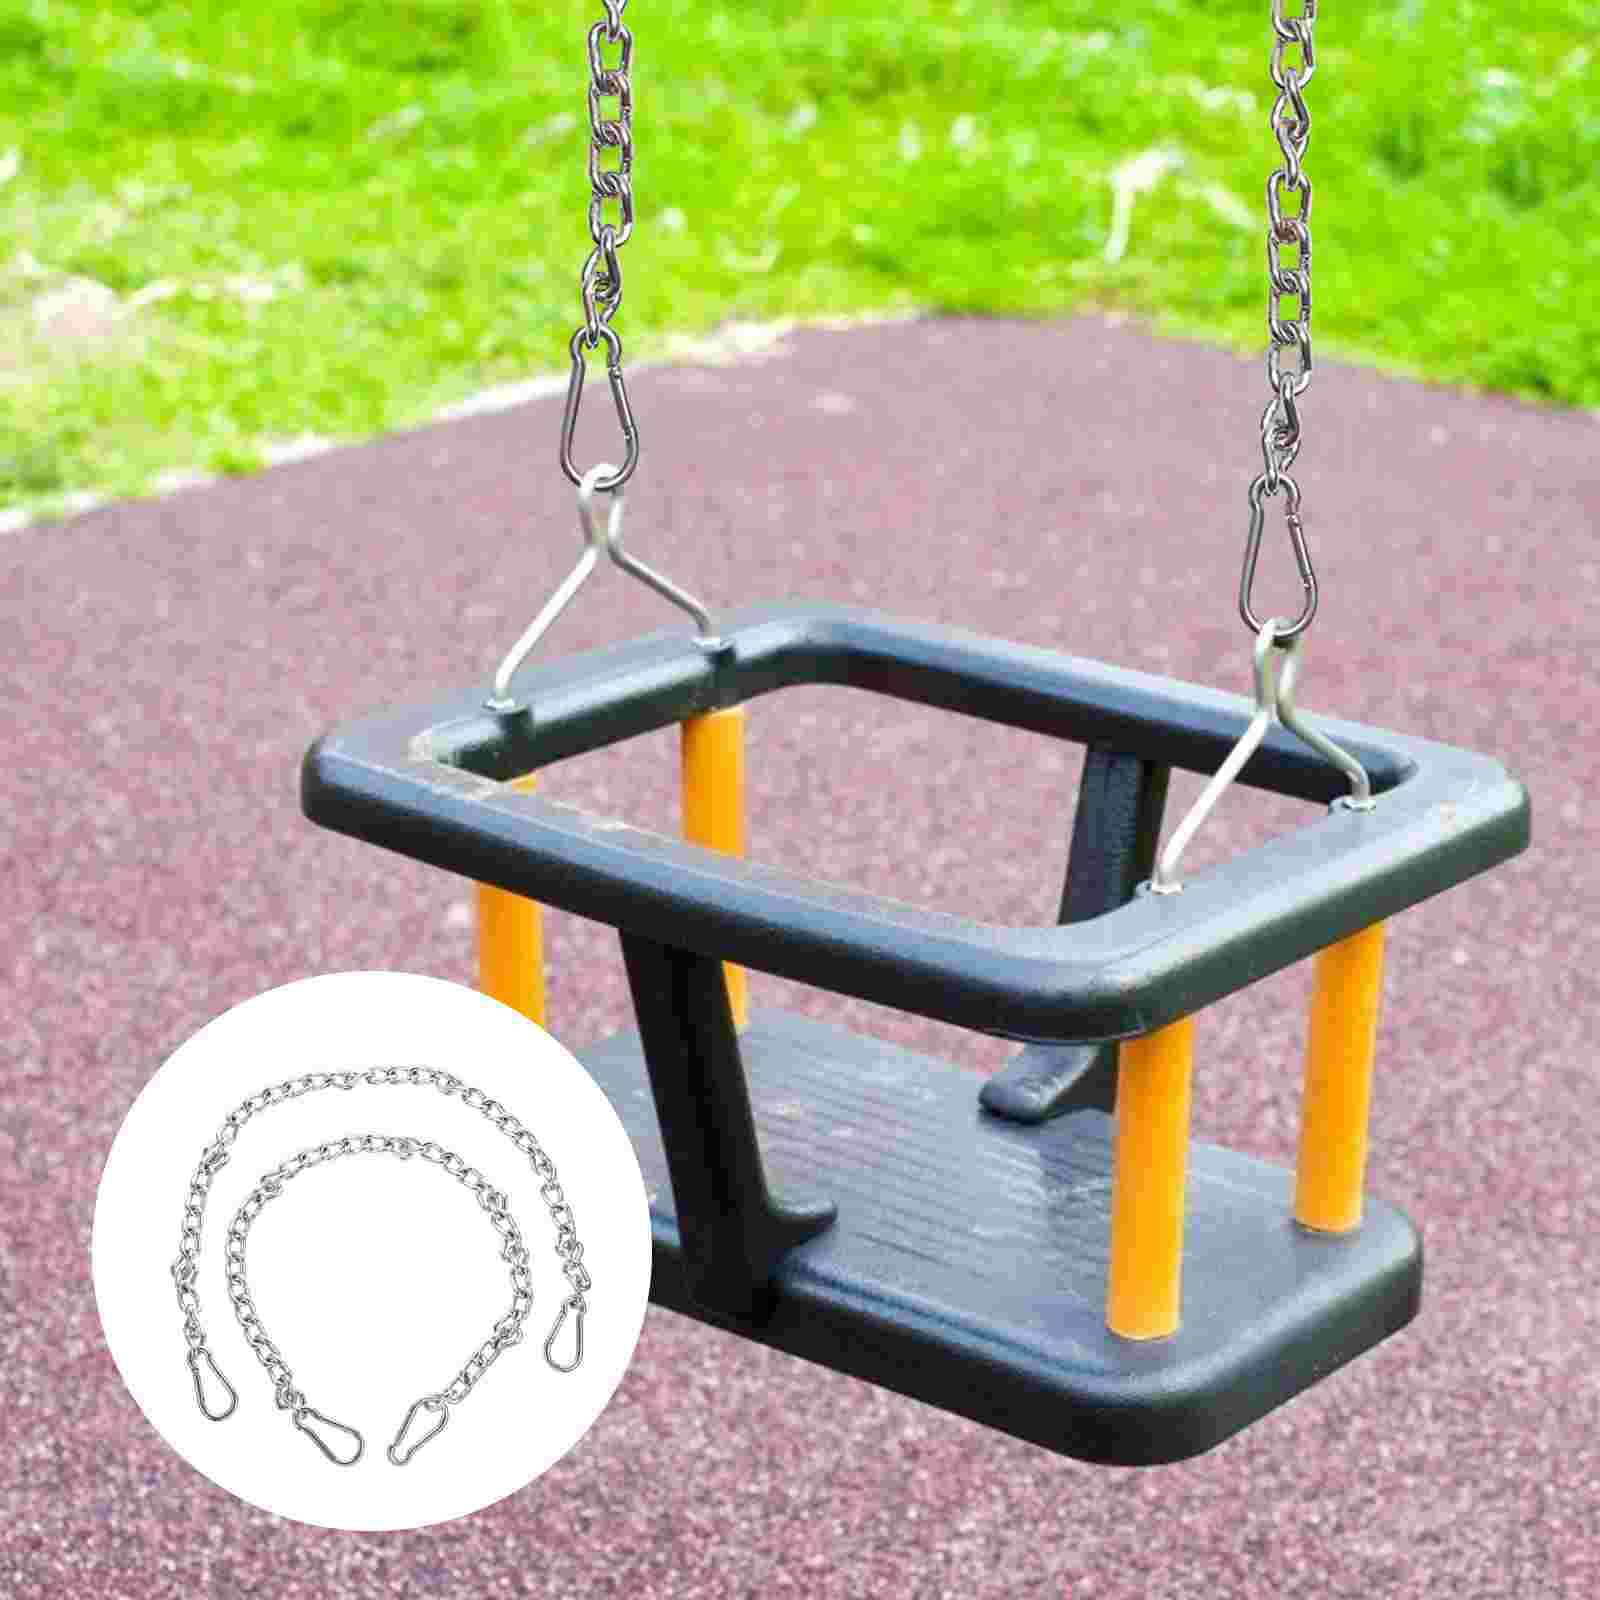 2pcs Swing Extention Chains Iron Extension Chain Outdoor Swings Accessories